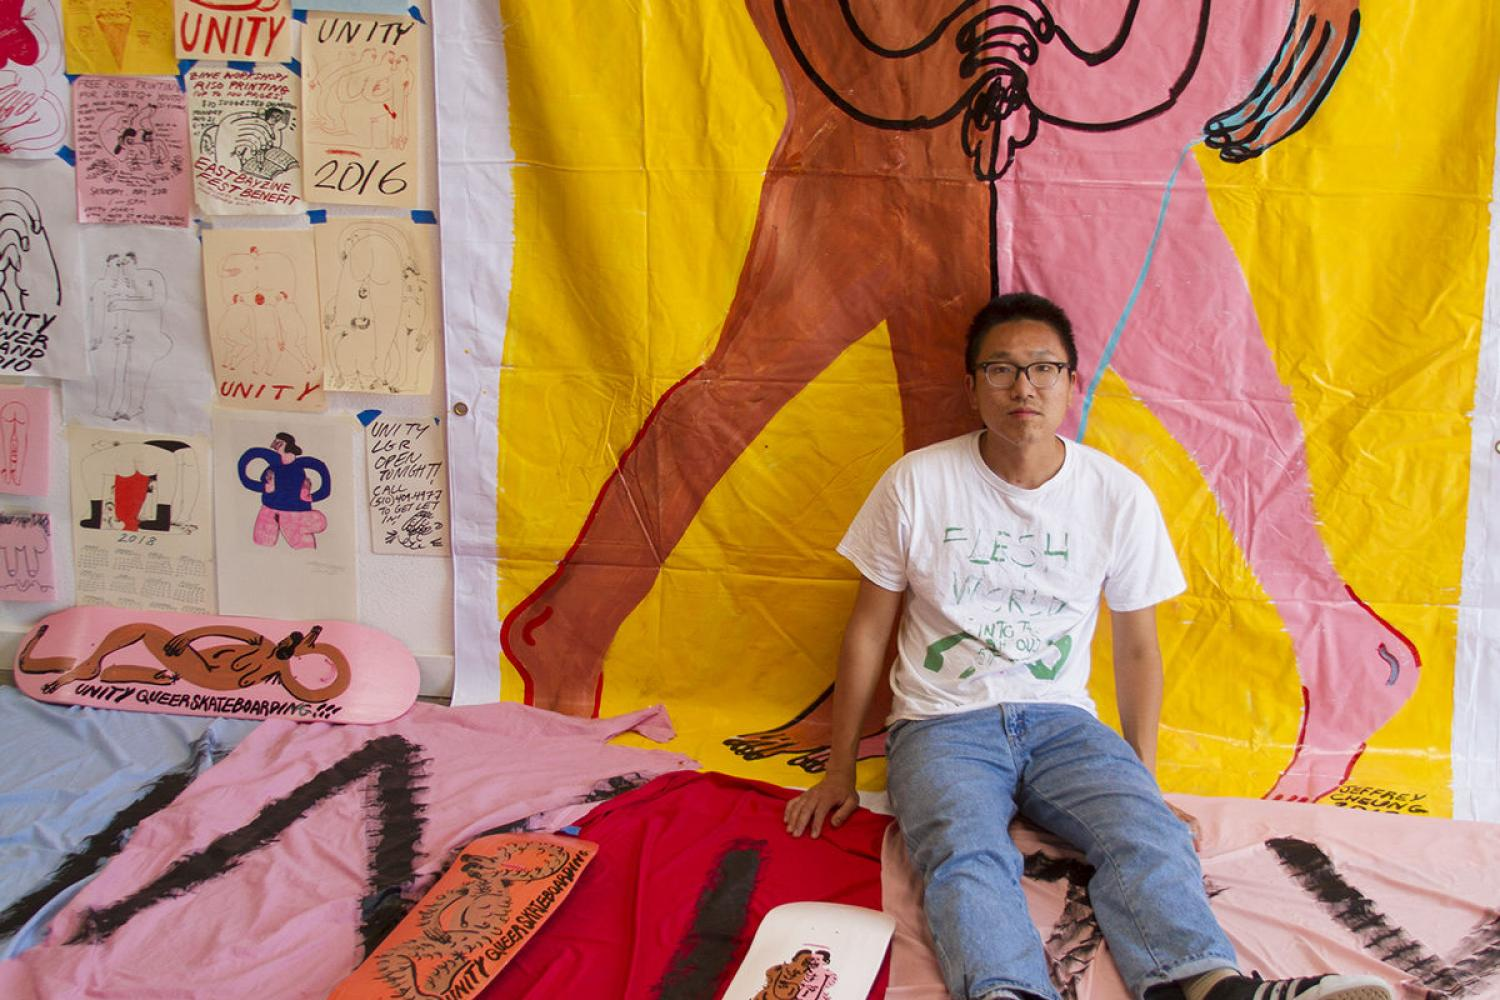 Portrait of artist Jeffrey Cheung by Dongyi Wu